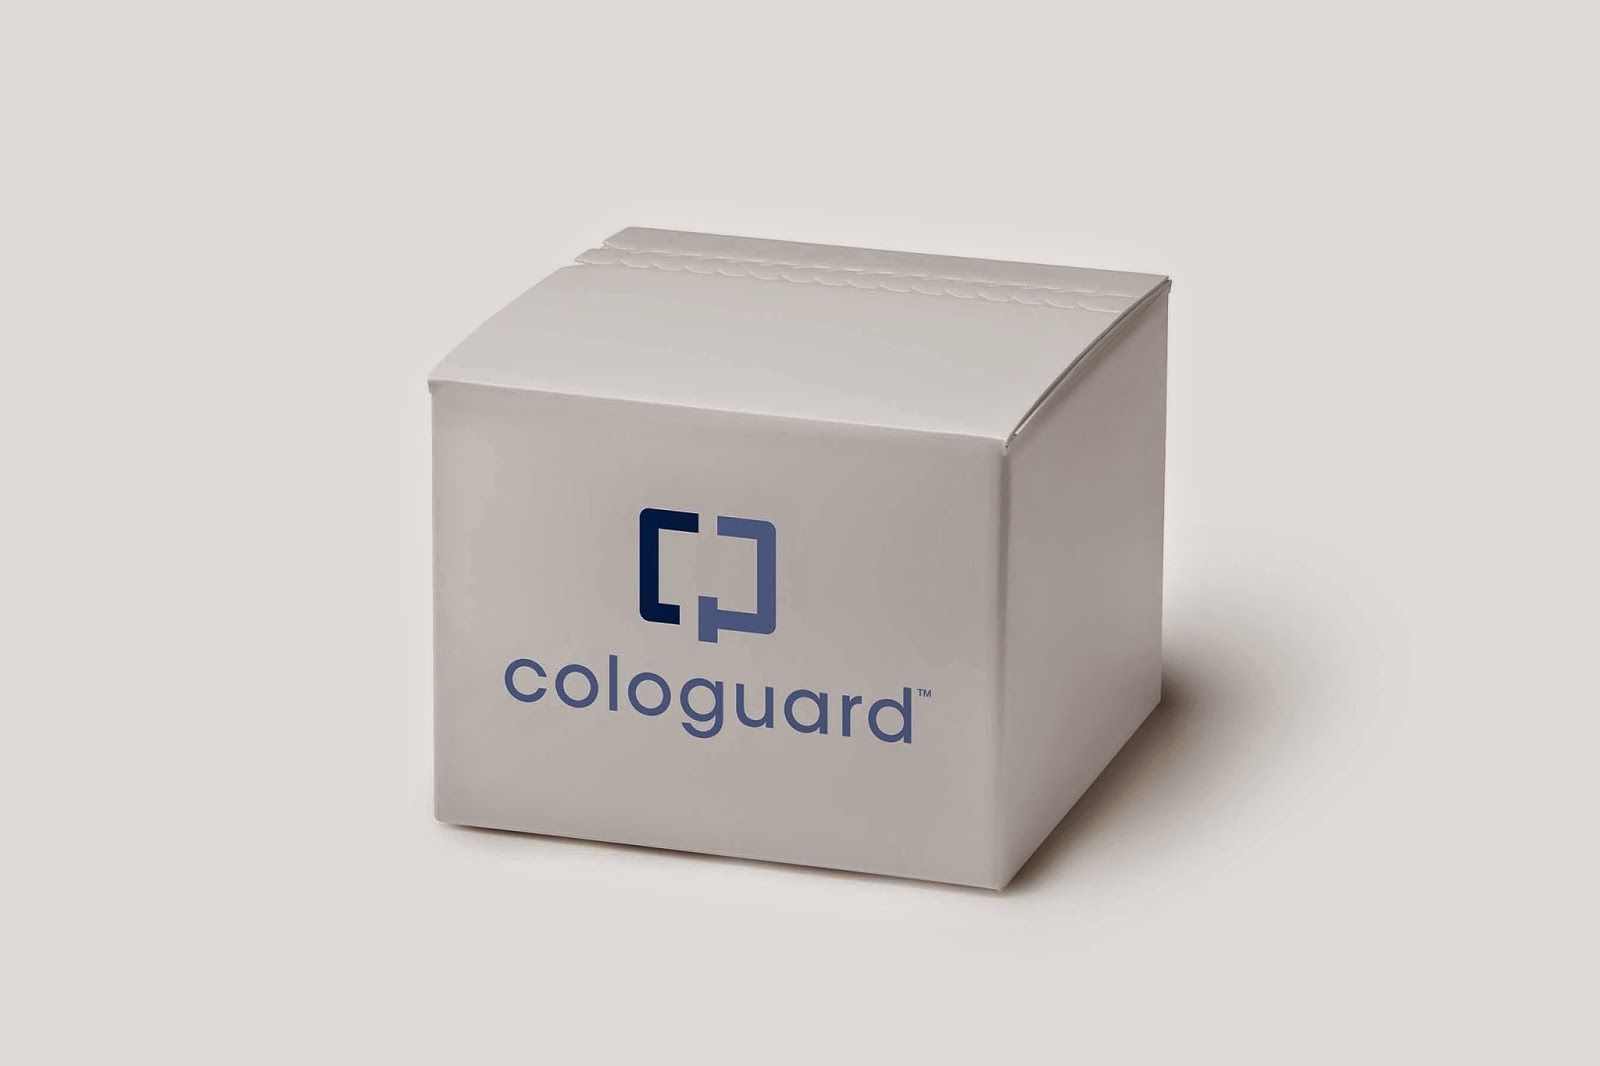 Image of cologuard kit